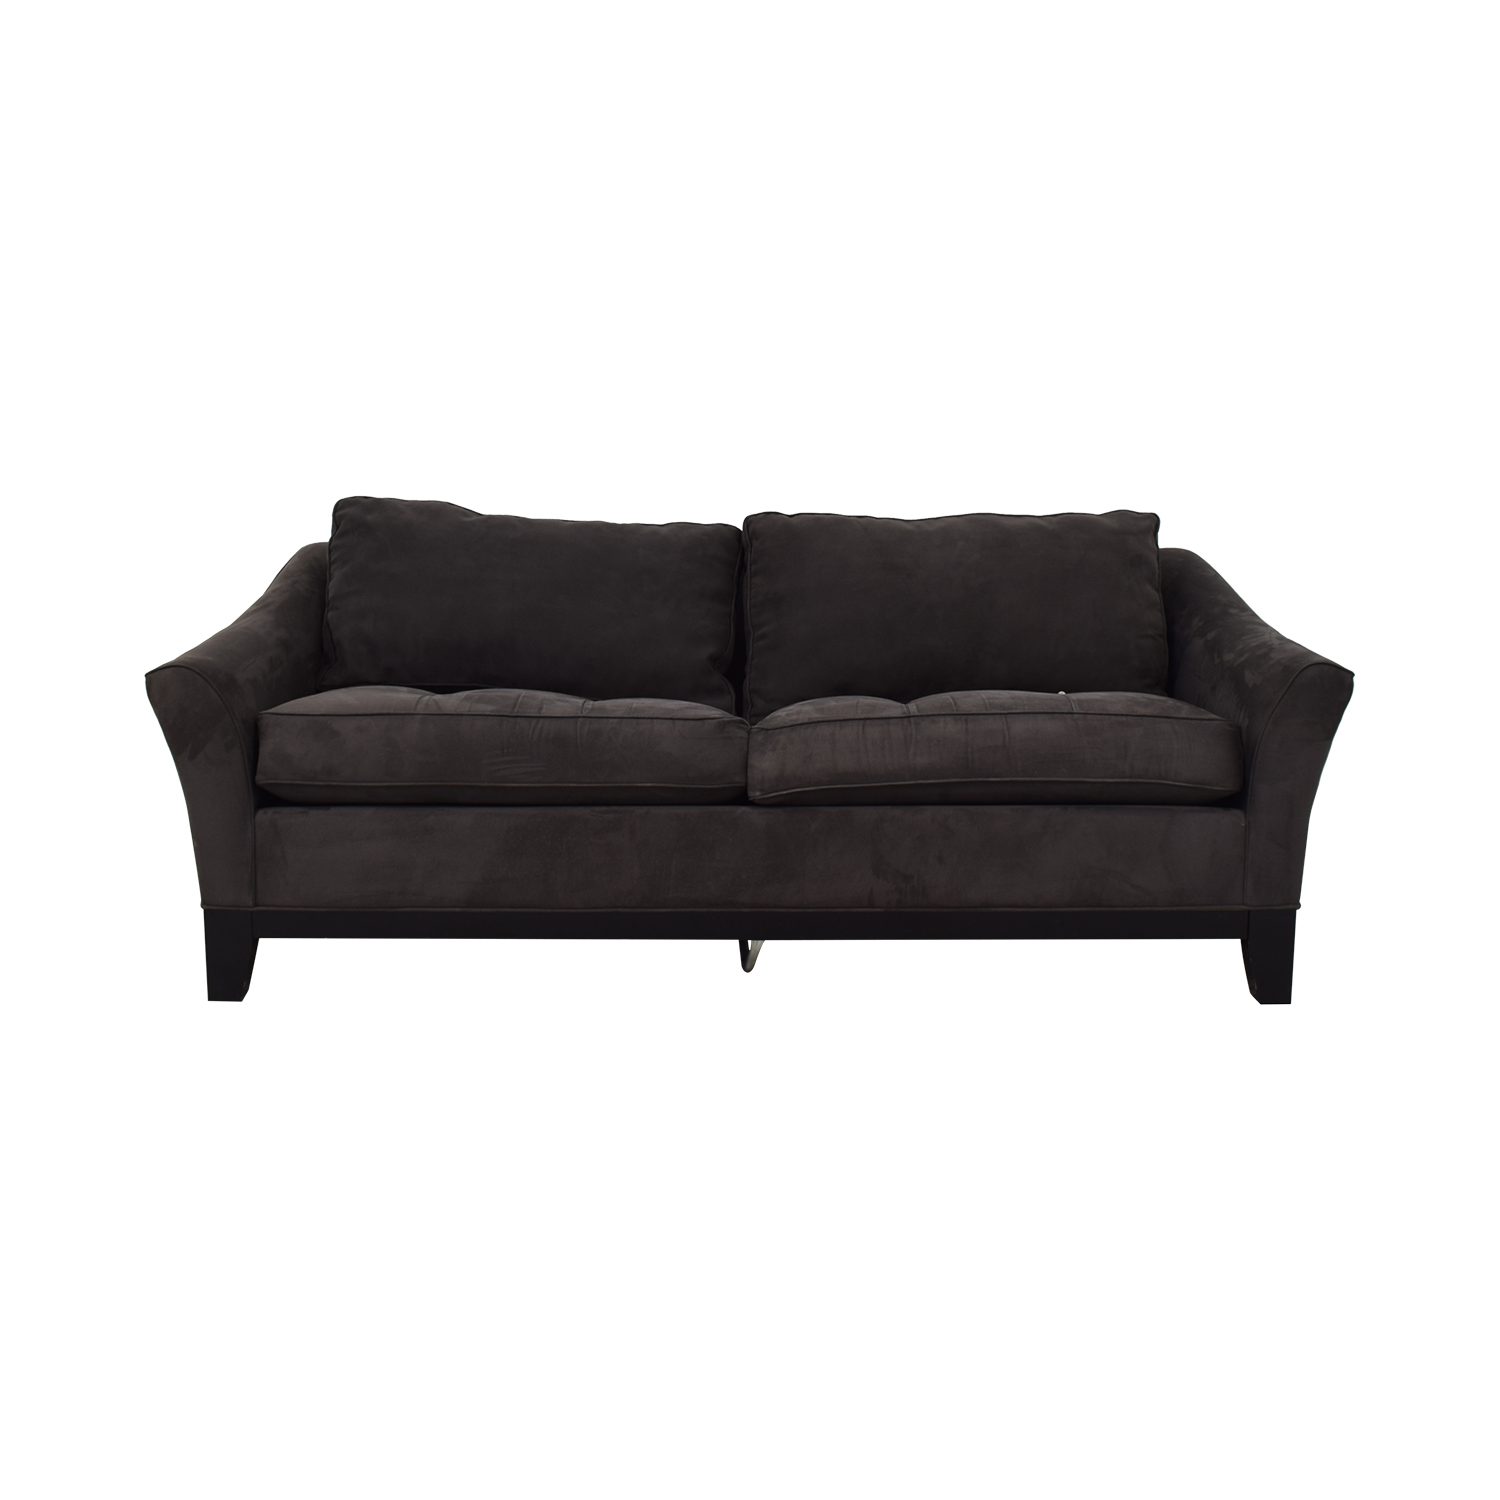 Raymour & Flanigan Queen Microfiber Sleeper Sofa / Sofas